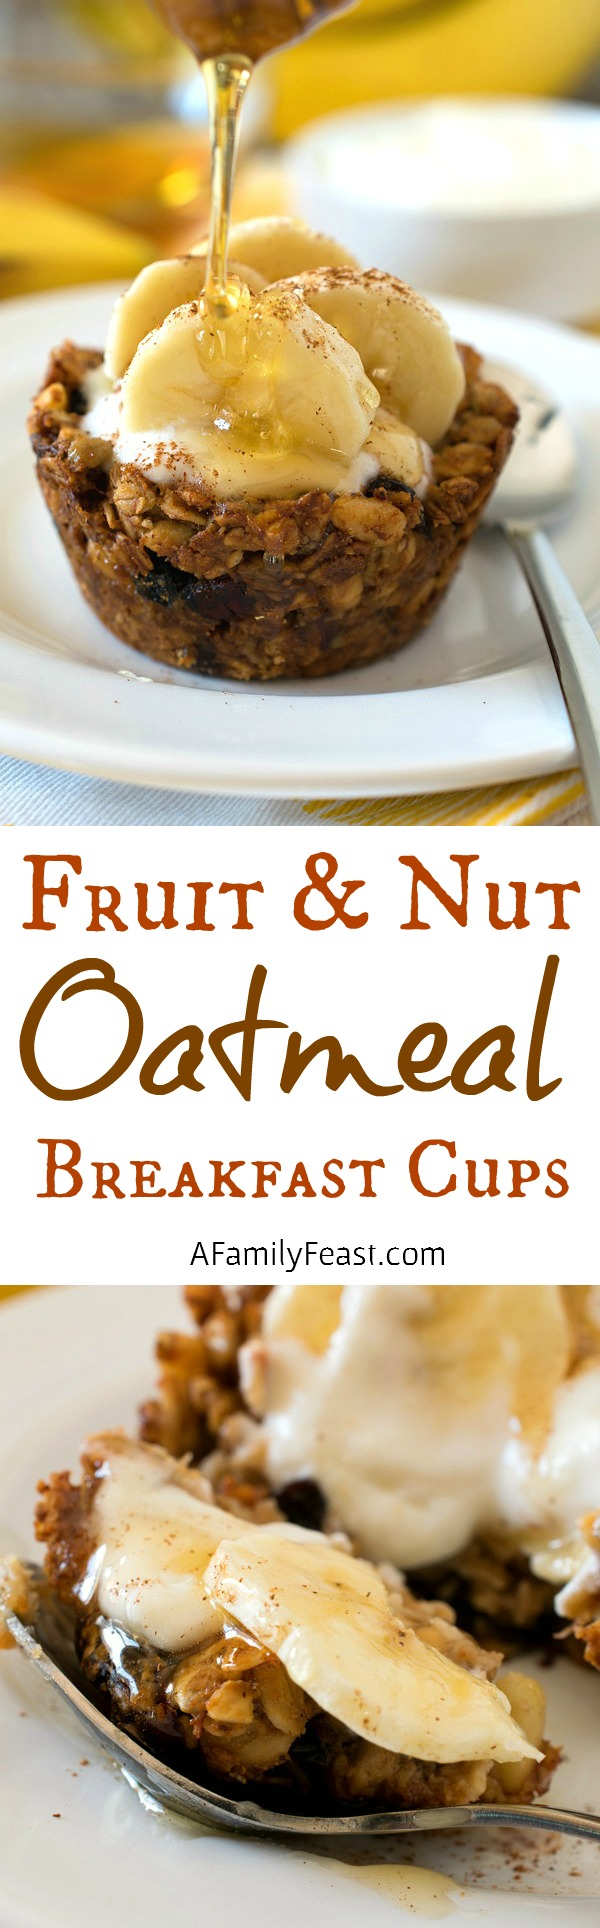 Fruit and Nut Oatmeal Breakfast Cups - Make breakfast a little extra special with these sweet little cups! Fill with yogurt and fruit for the perfect sweet treat.